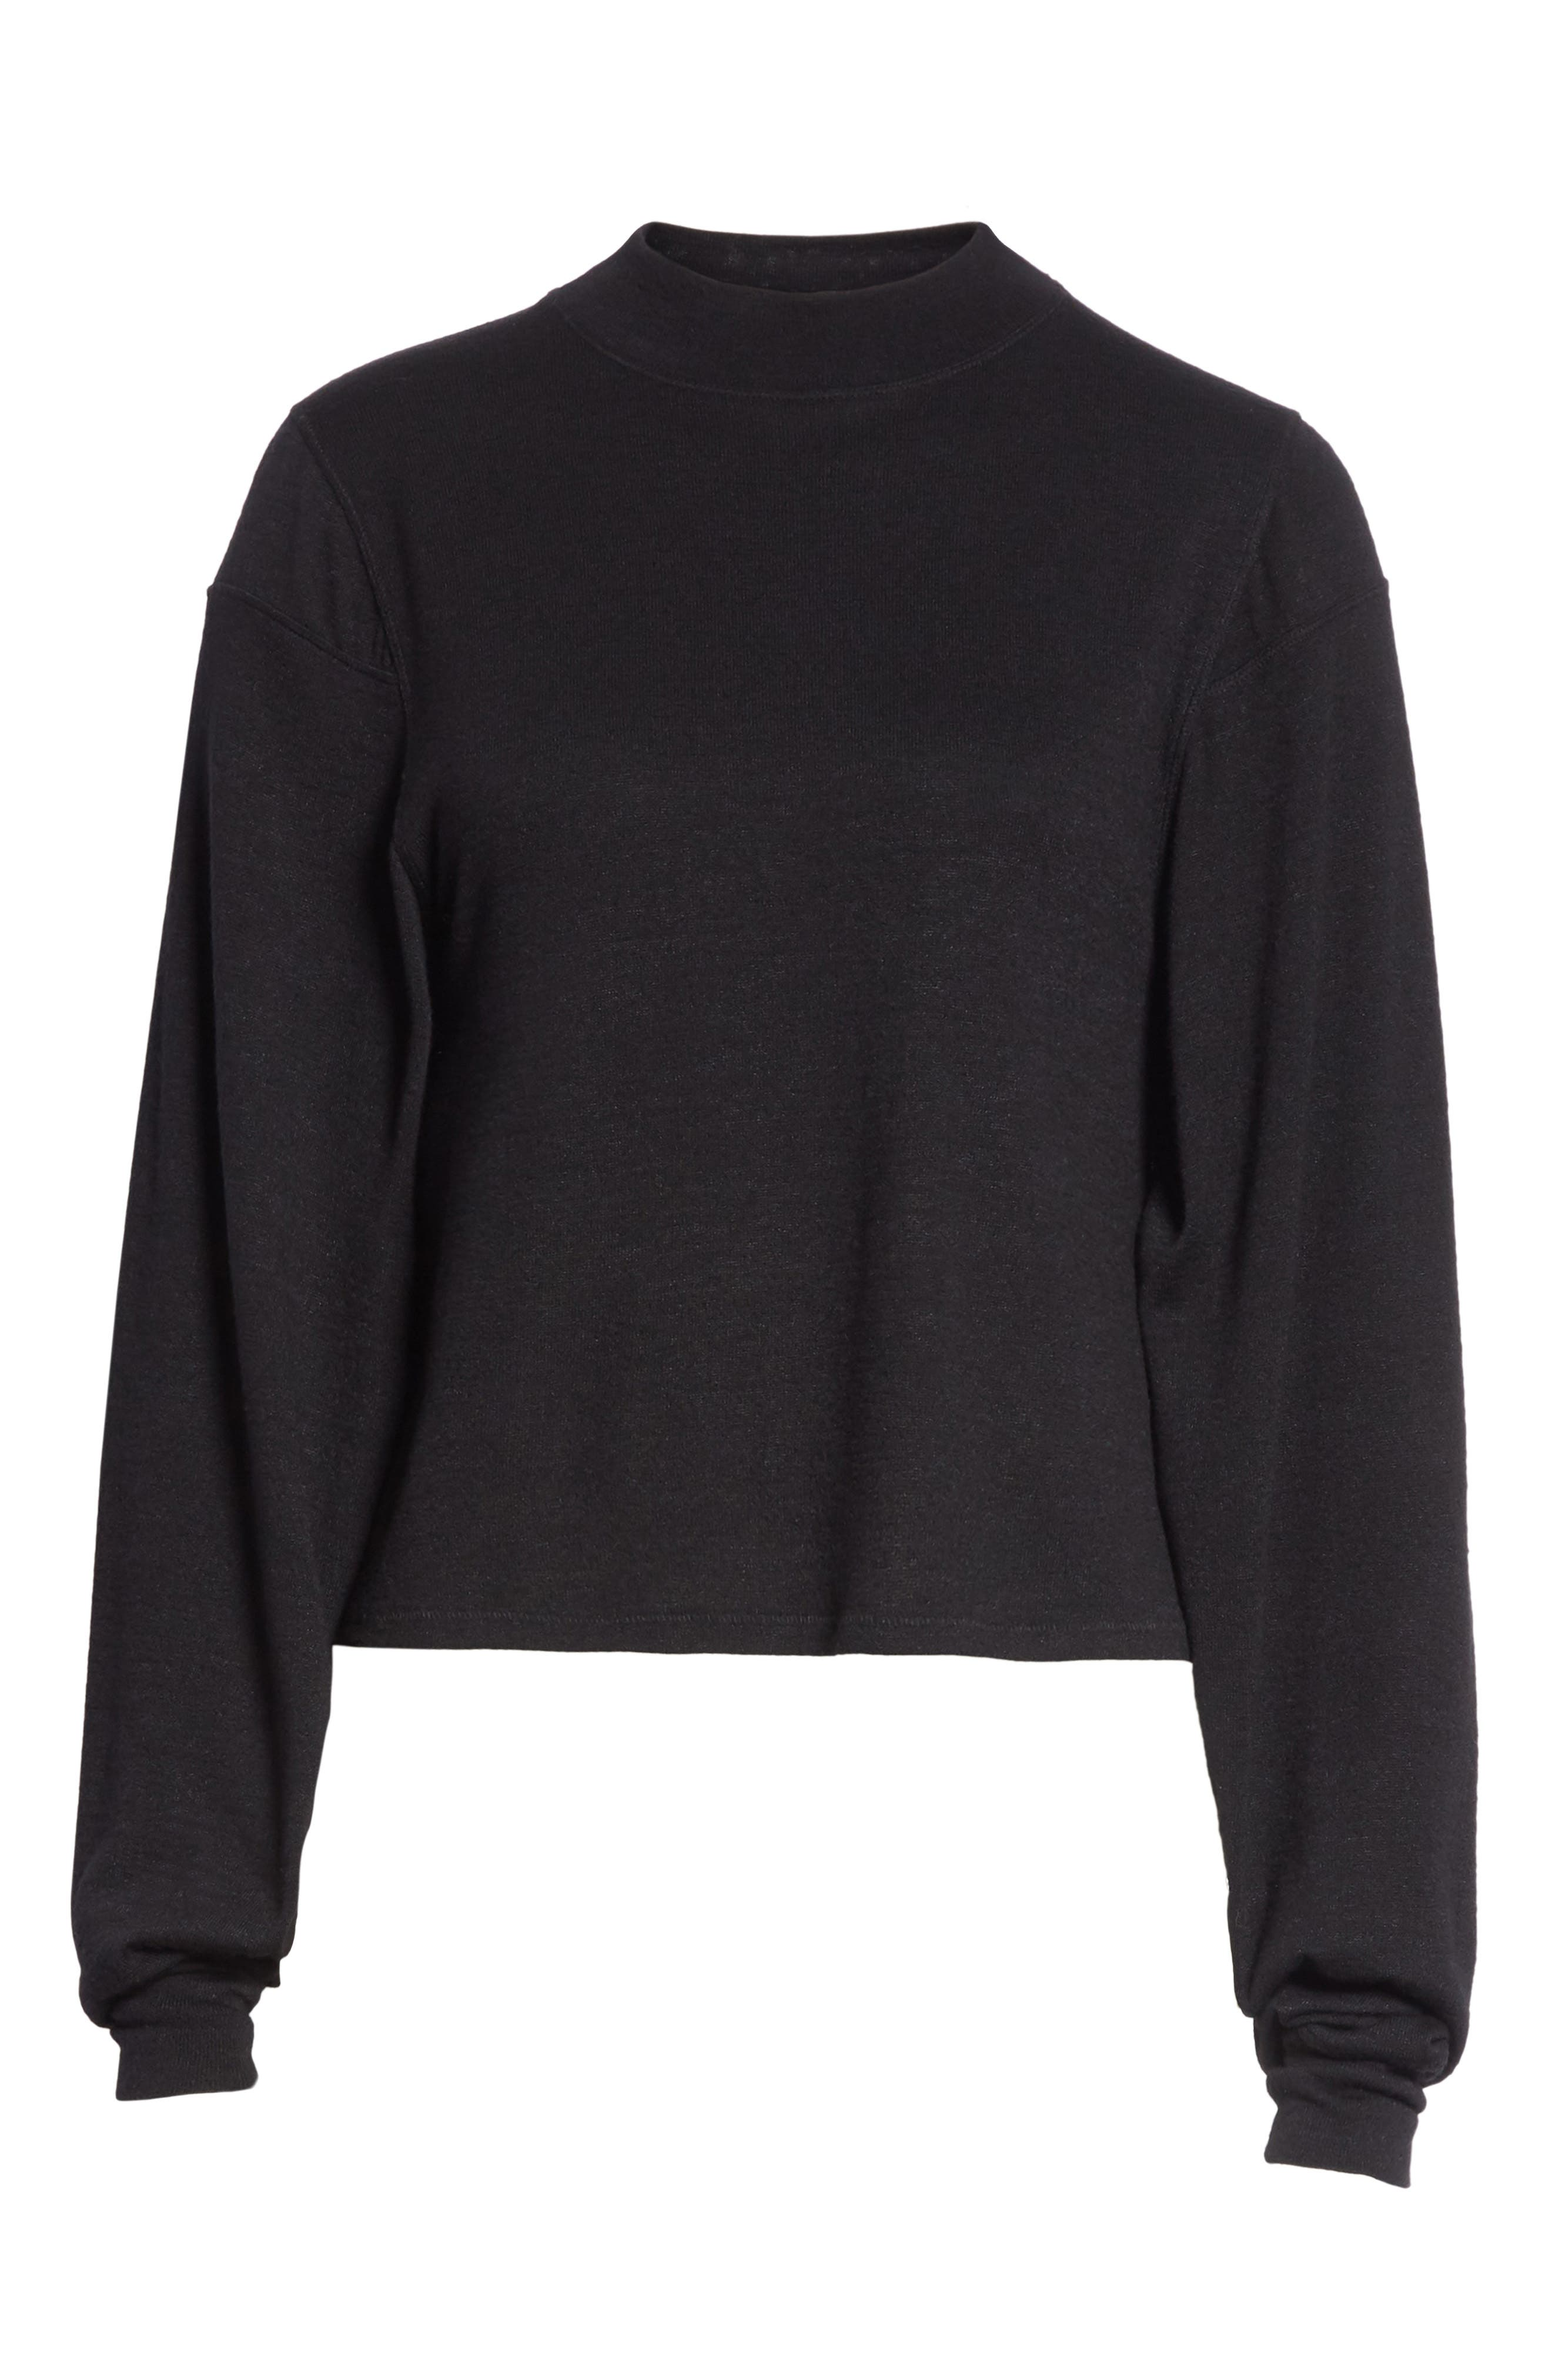 RAG & BONE,                             JEAN Bigsby Long Sleeve Top,                             Alternate thumbnail 6, color,                             001